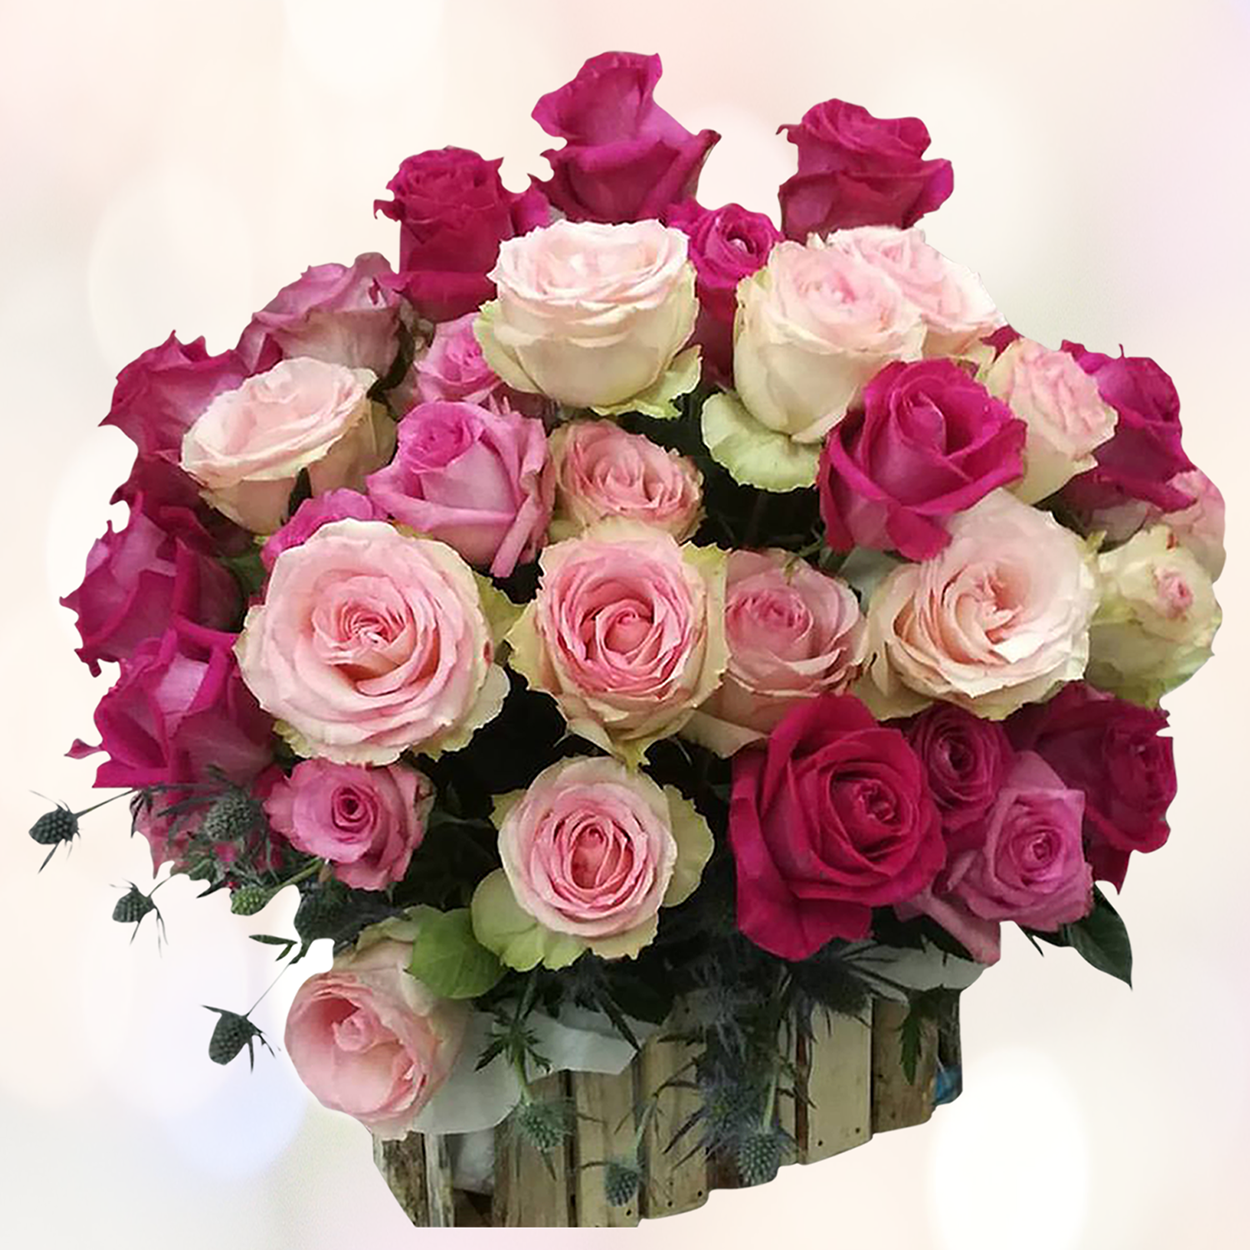 ecuadorian roses Real roses that last more than a year long onlyroses, the uk's finest specialist rose florist has created the infiniterose, real premium ecuadorian roses that have.